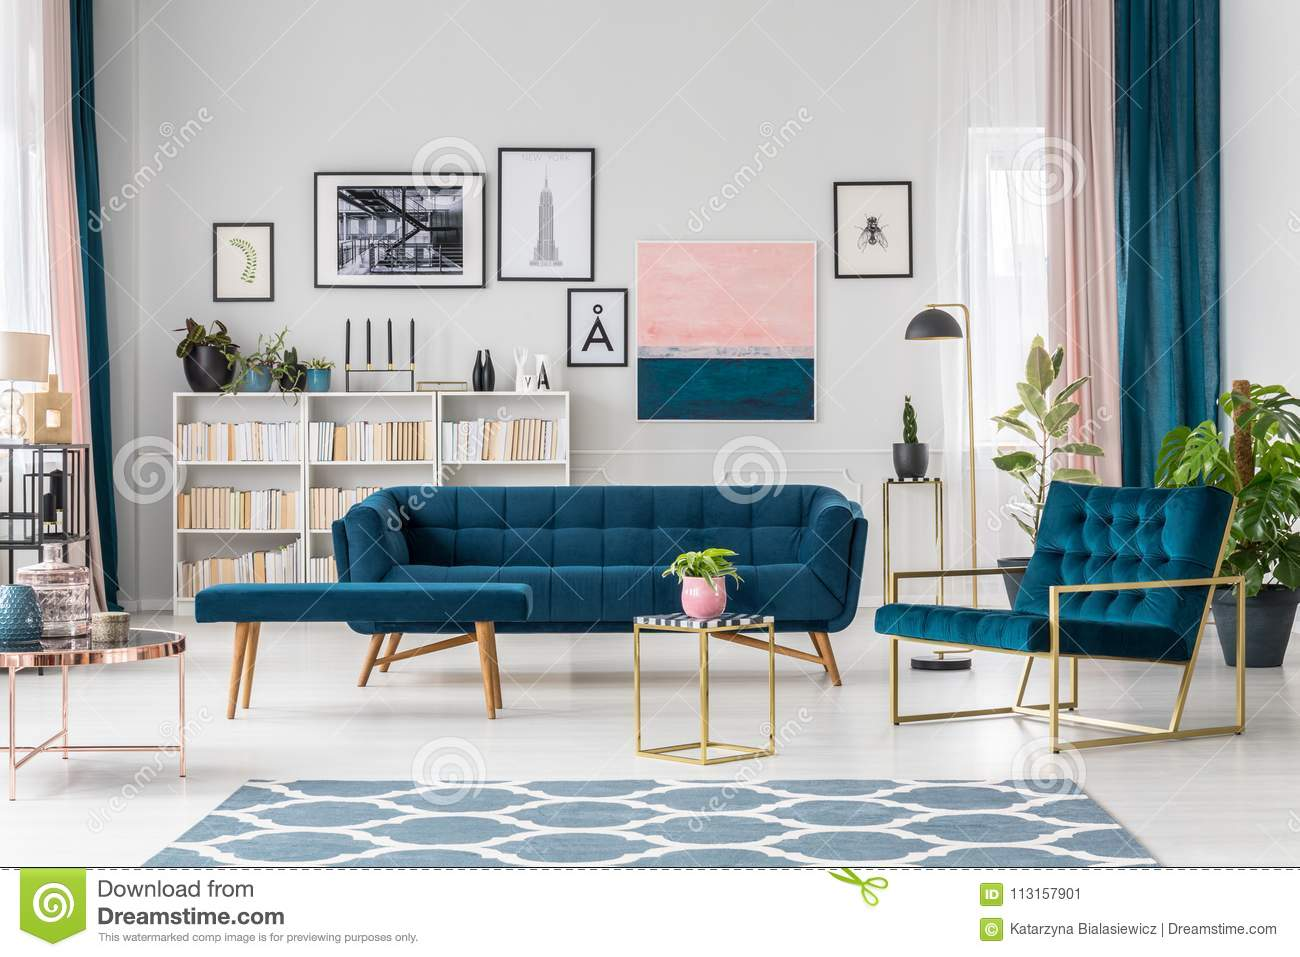 Modern Living Room With Sofa Stock Image Image Of Emerald Home 113157901